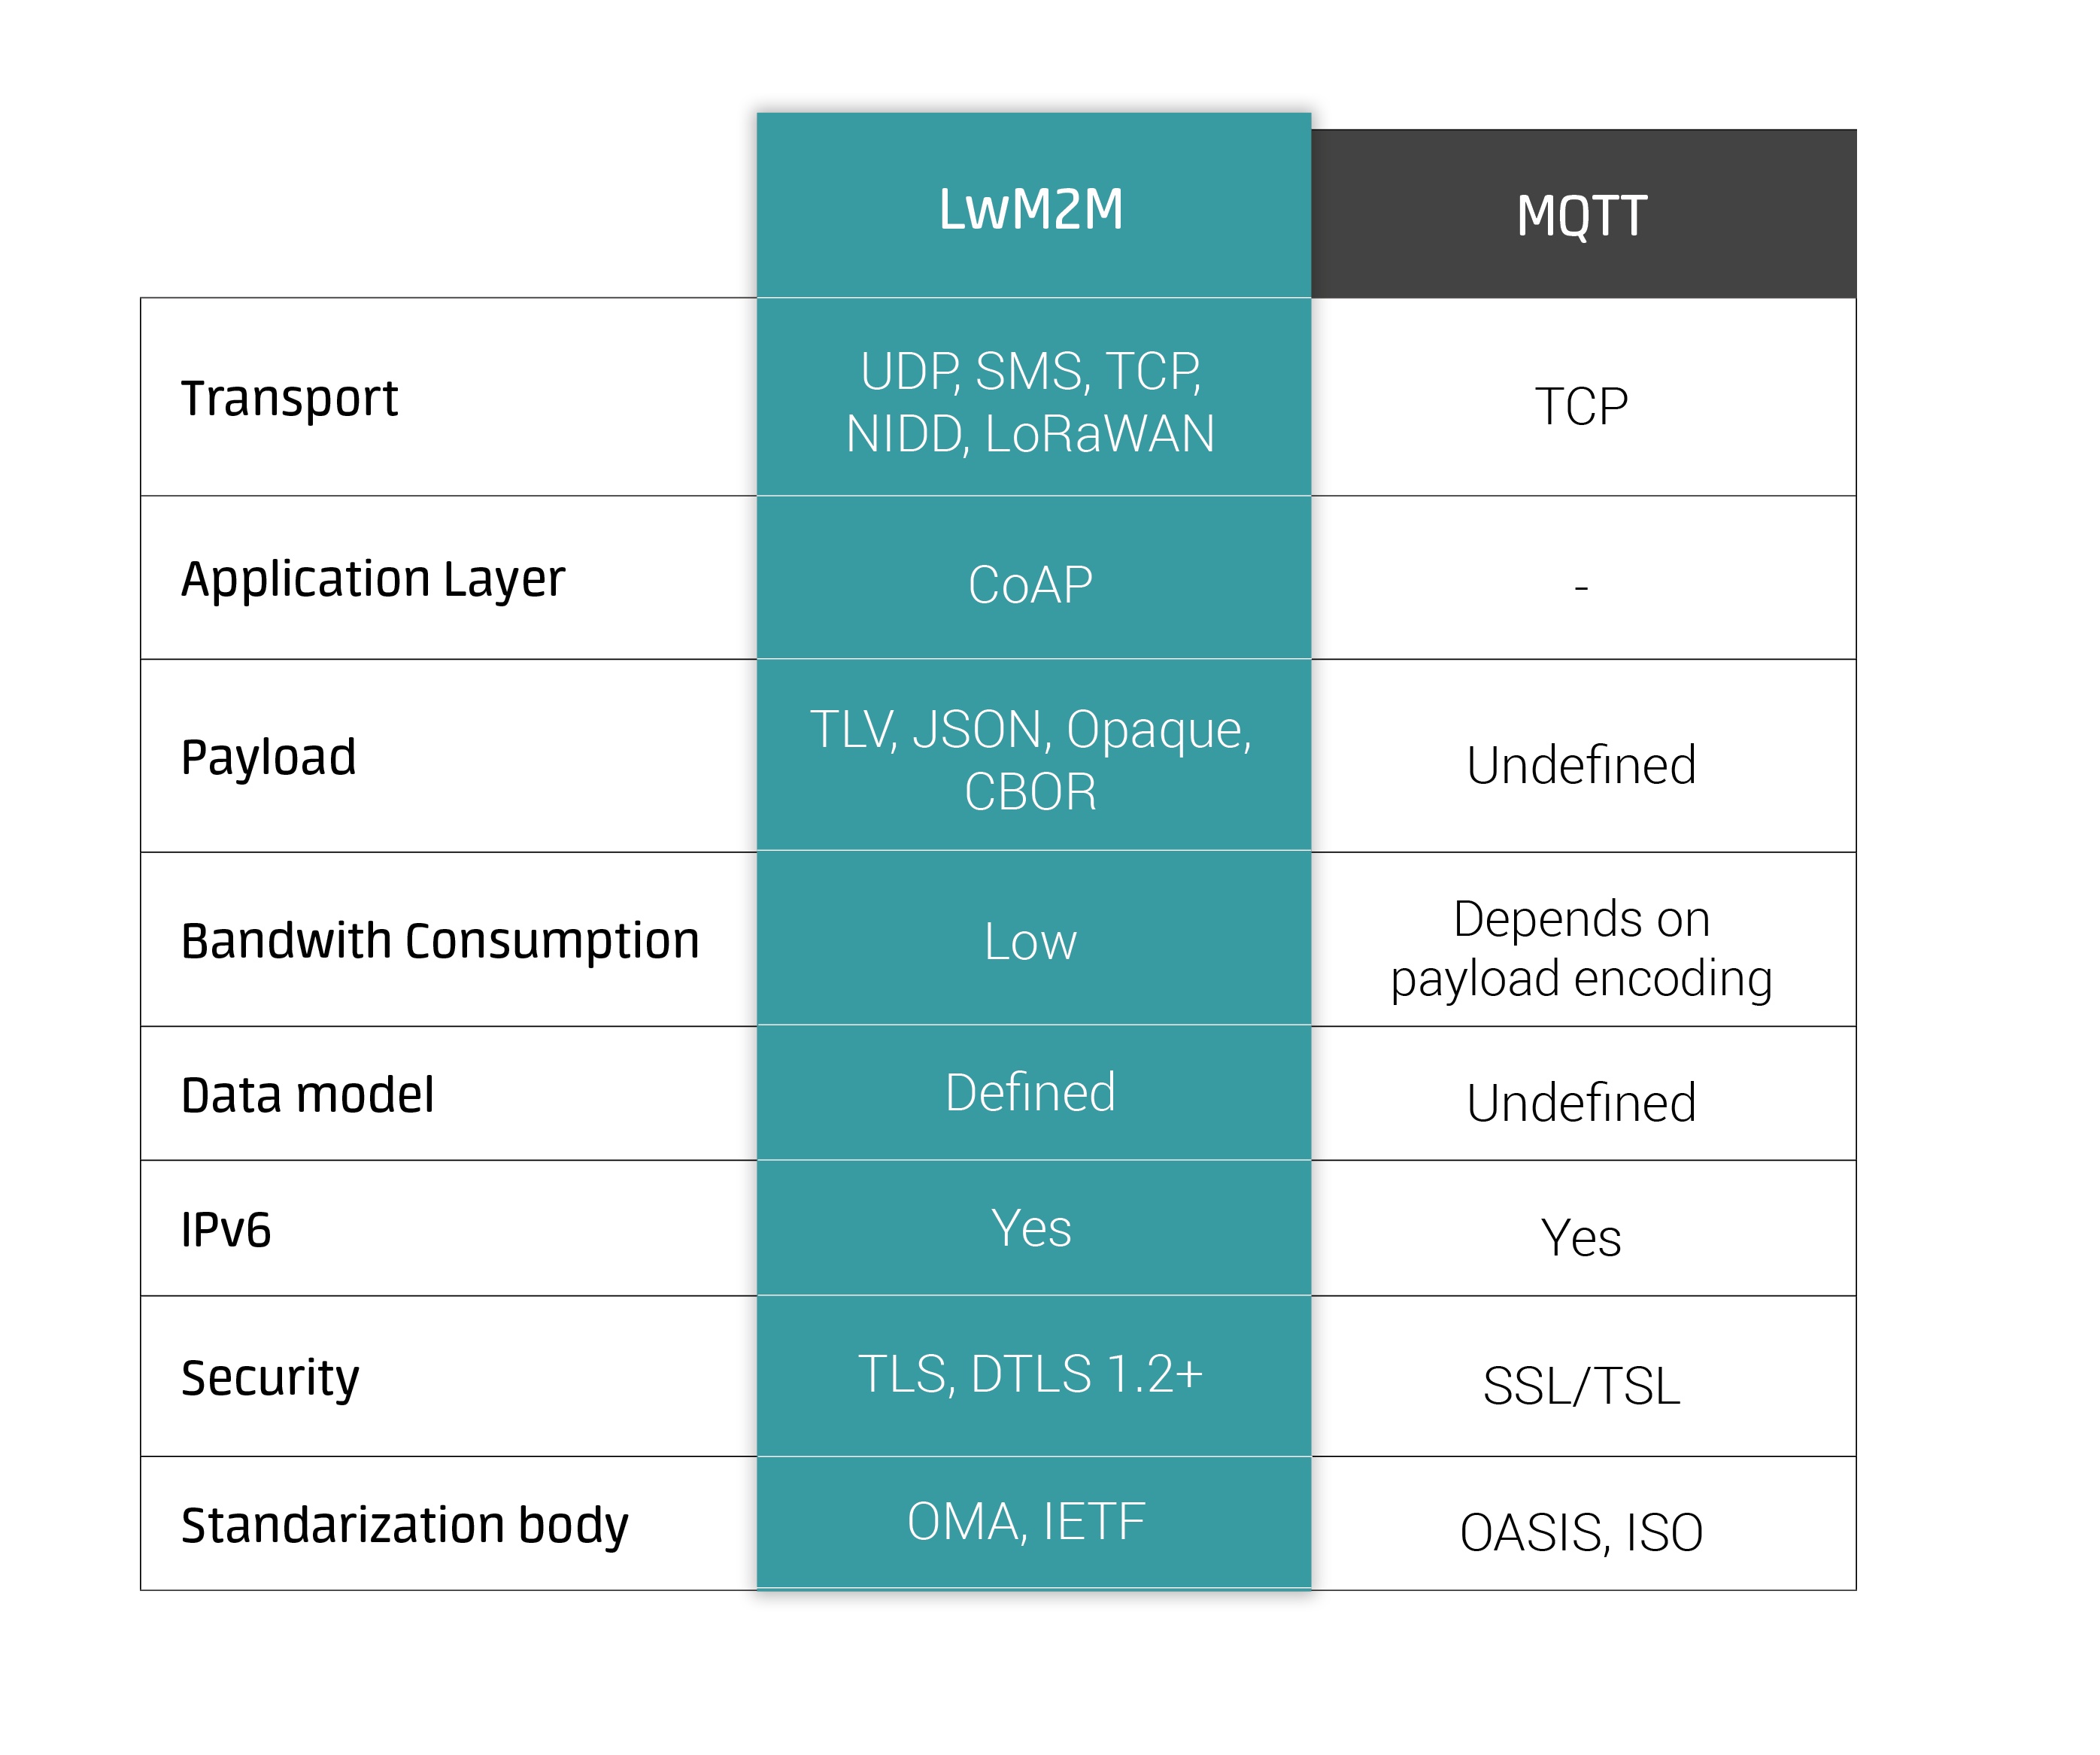 LwM2M vs MQTT: Differences